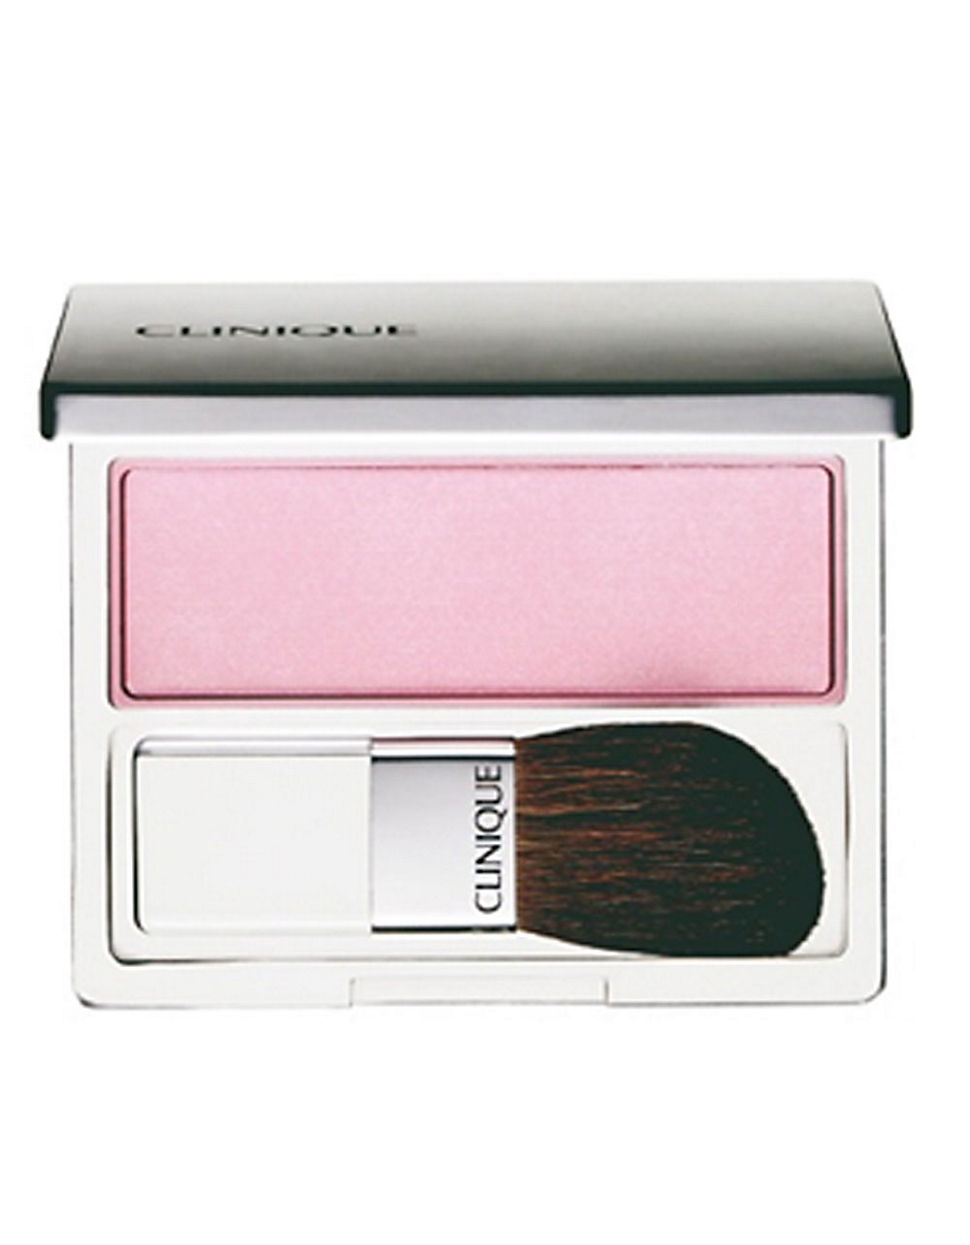 CLINIQUE Blushing Blush Powder Blush aglow